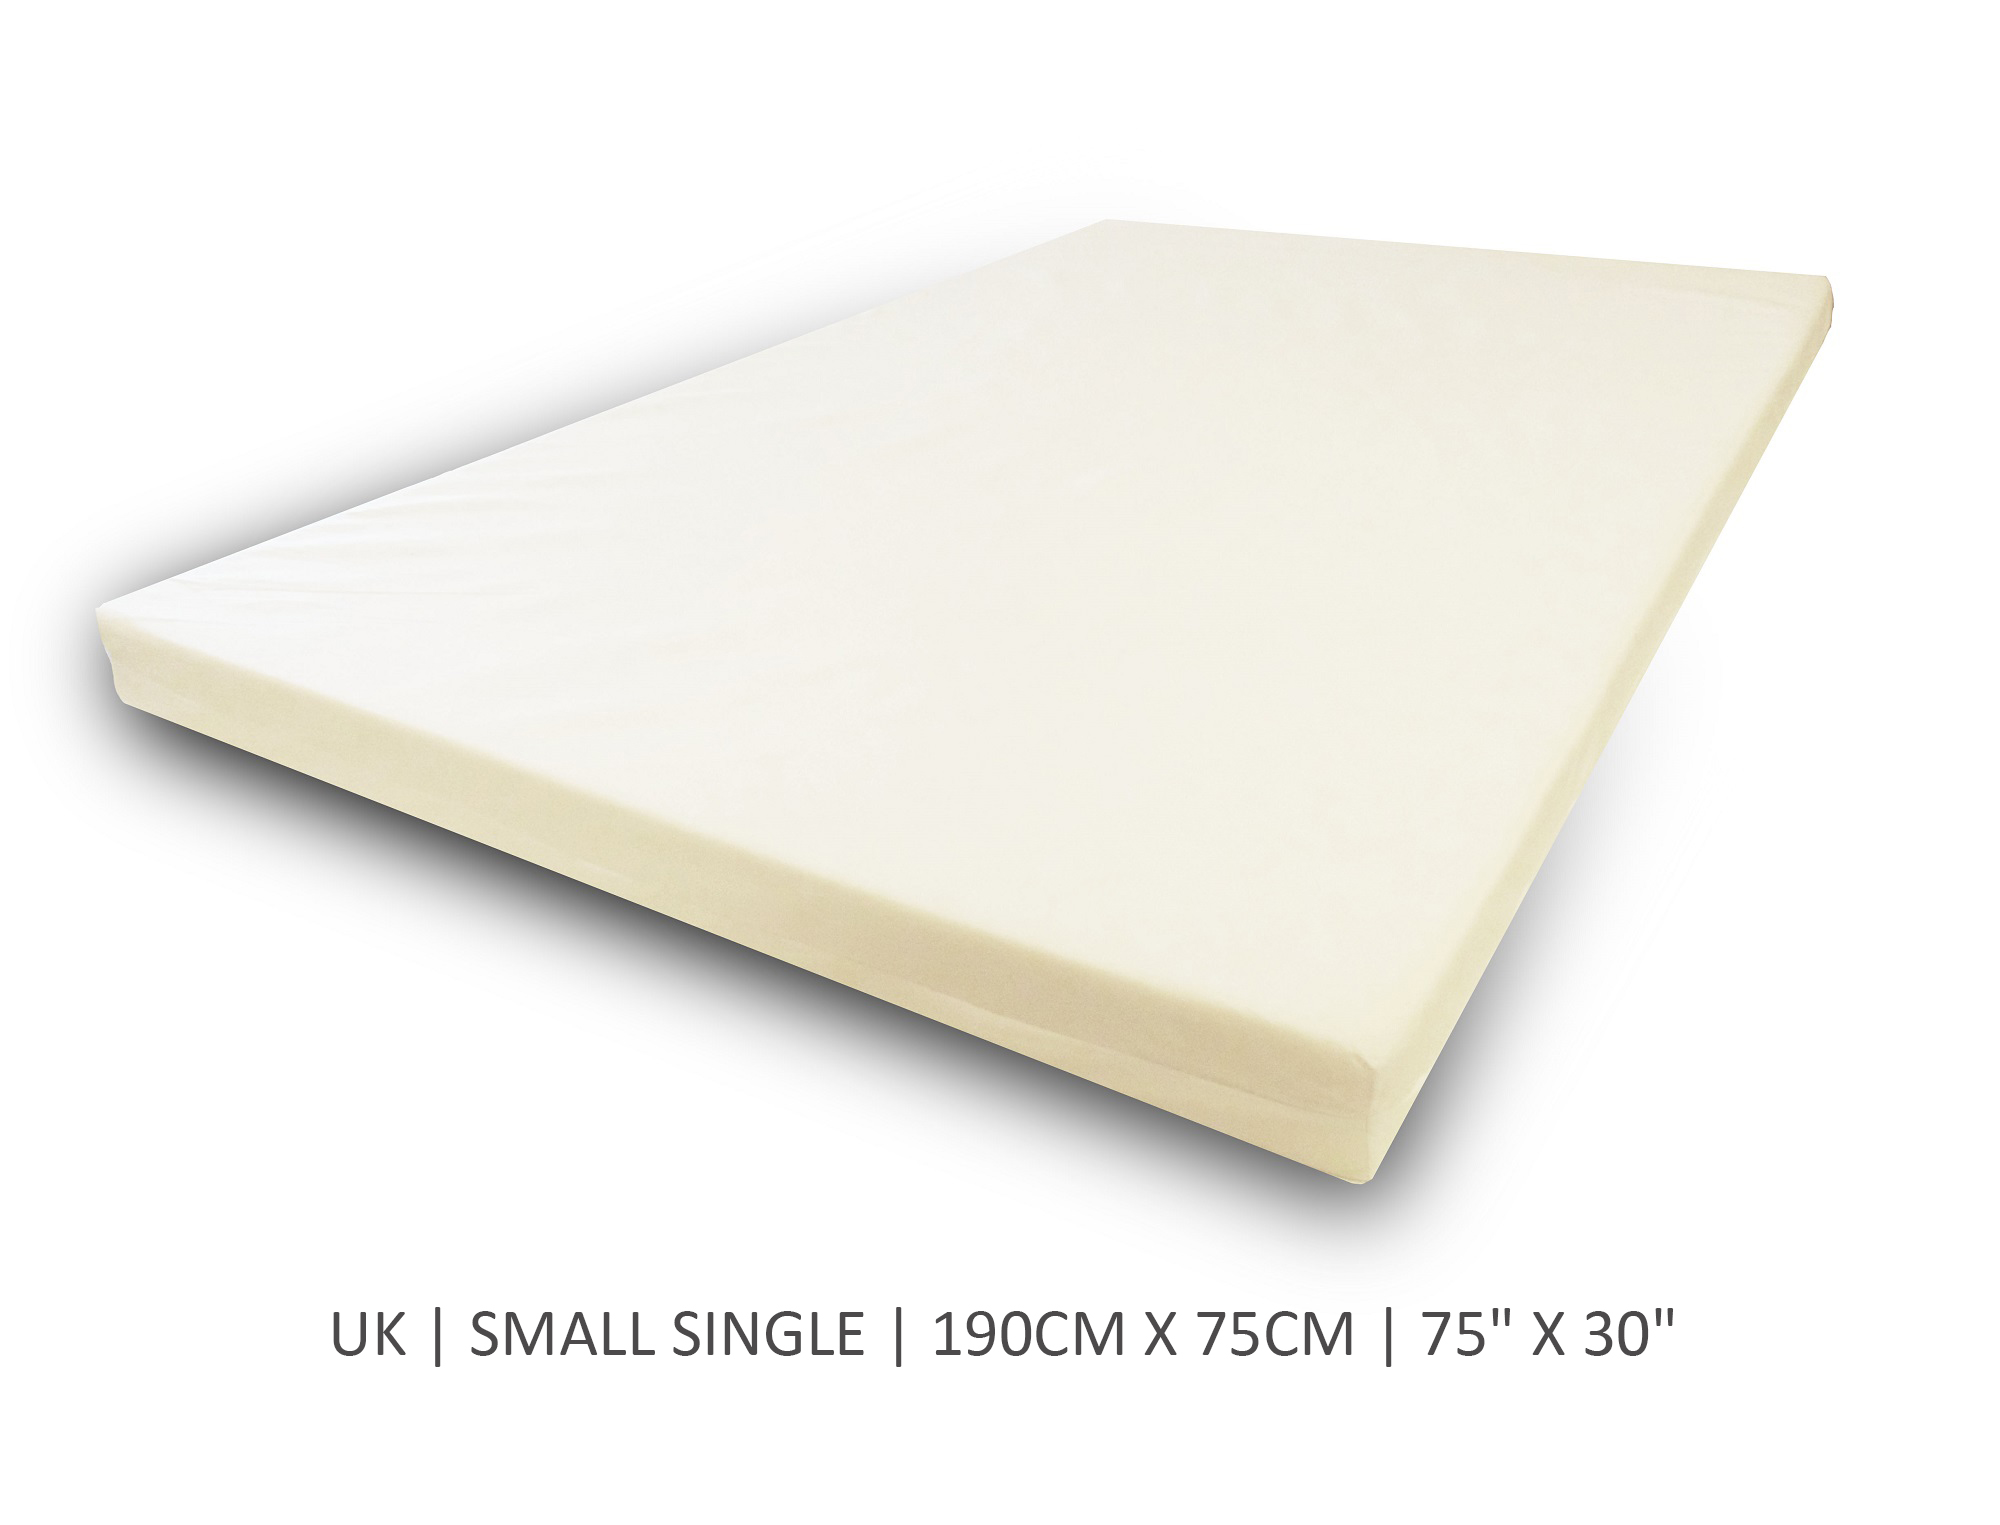 Uk Small Single Mattress Topper Replacement Covers